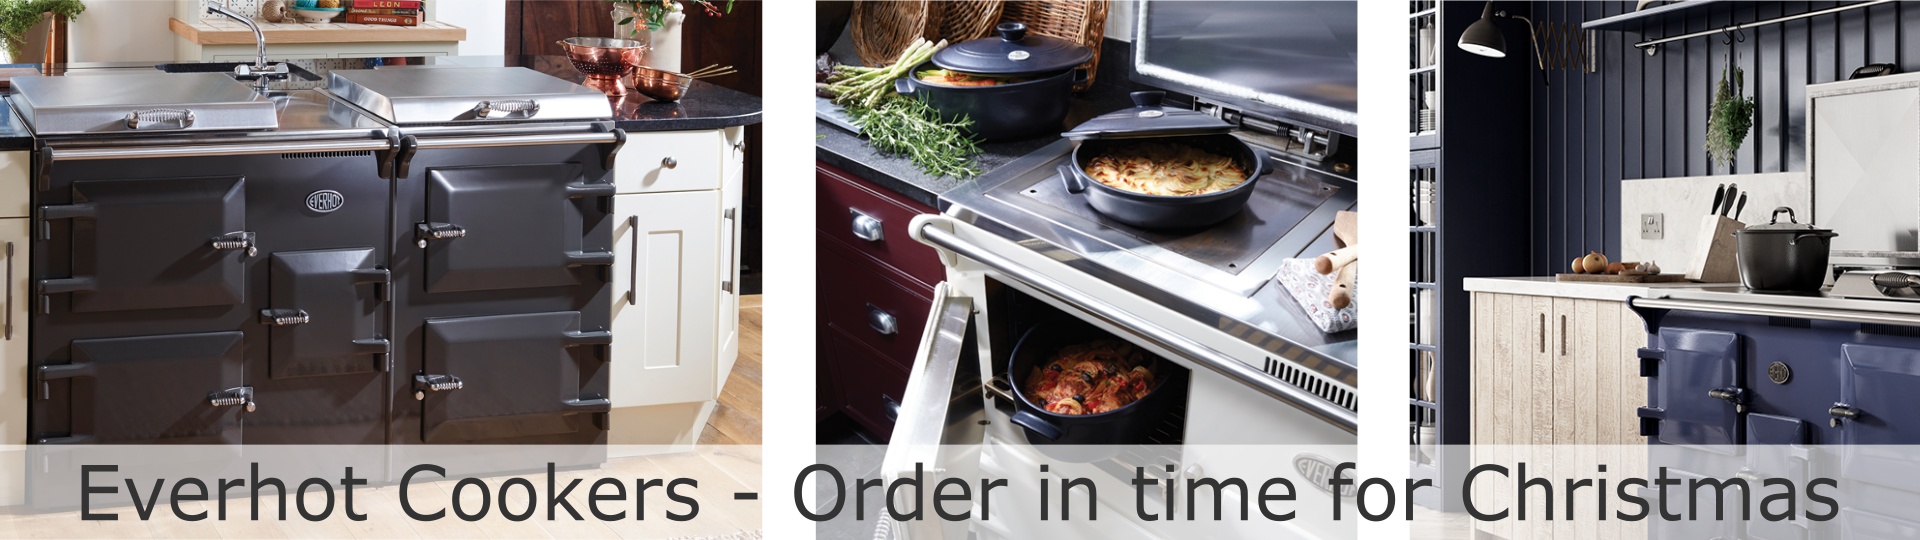 Everhot cookers West Wales Christmas